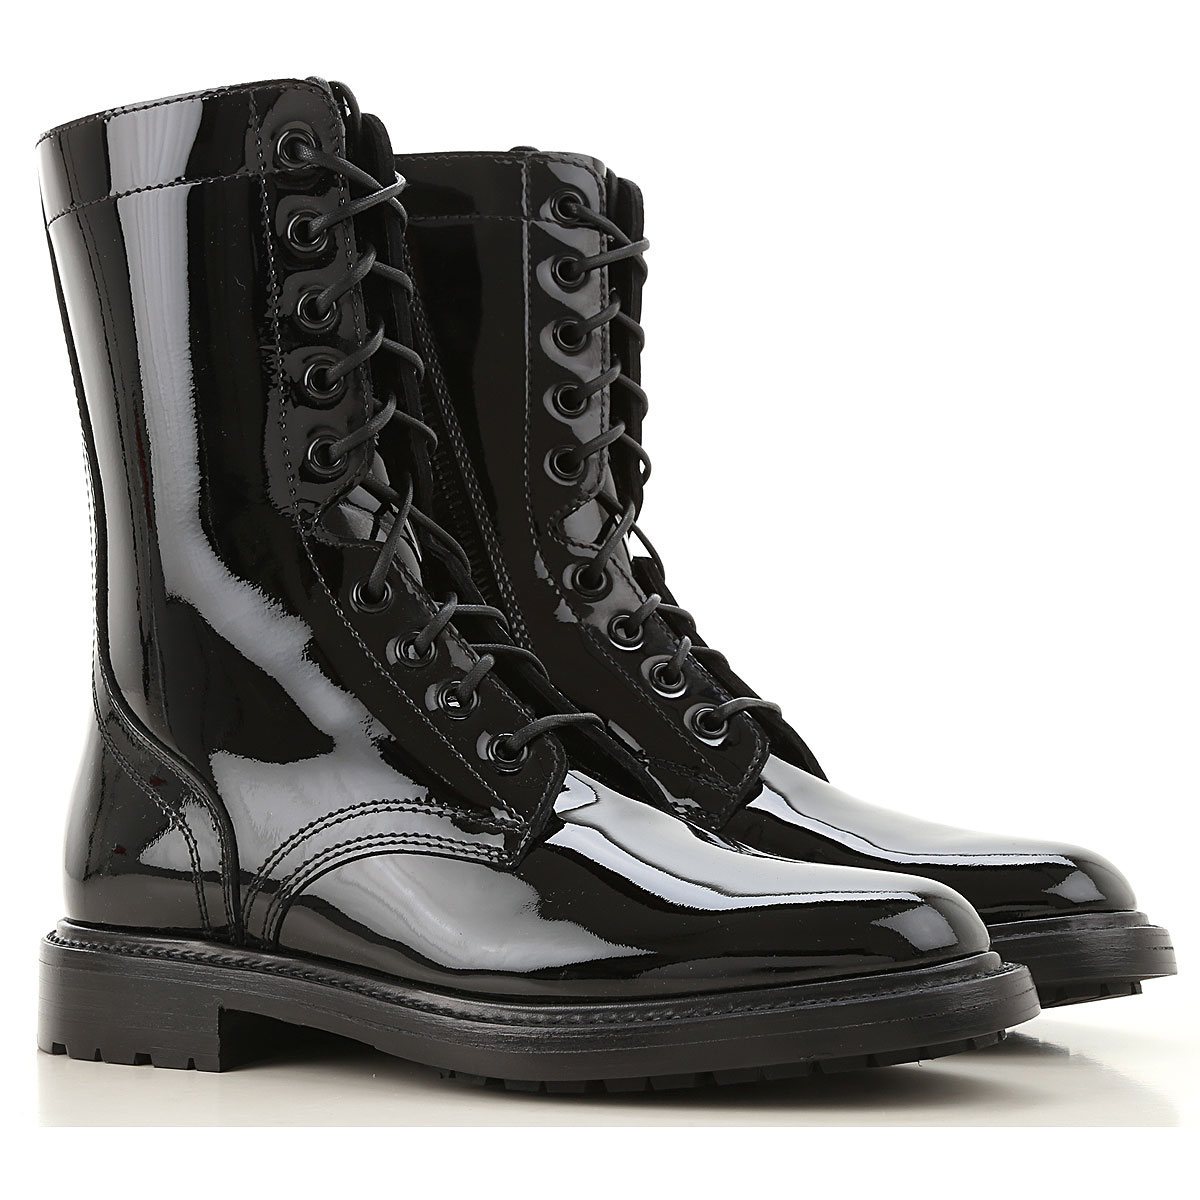 Celine Boots for Women, Booties On Sale, Black, Patent Leather, 2019, 5.5 6 6.5 7 8 9